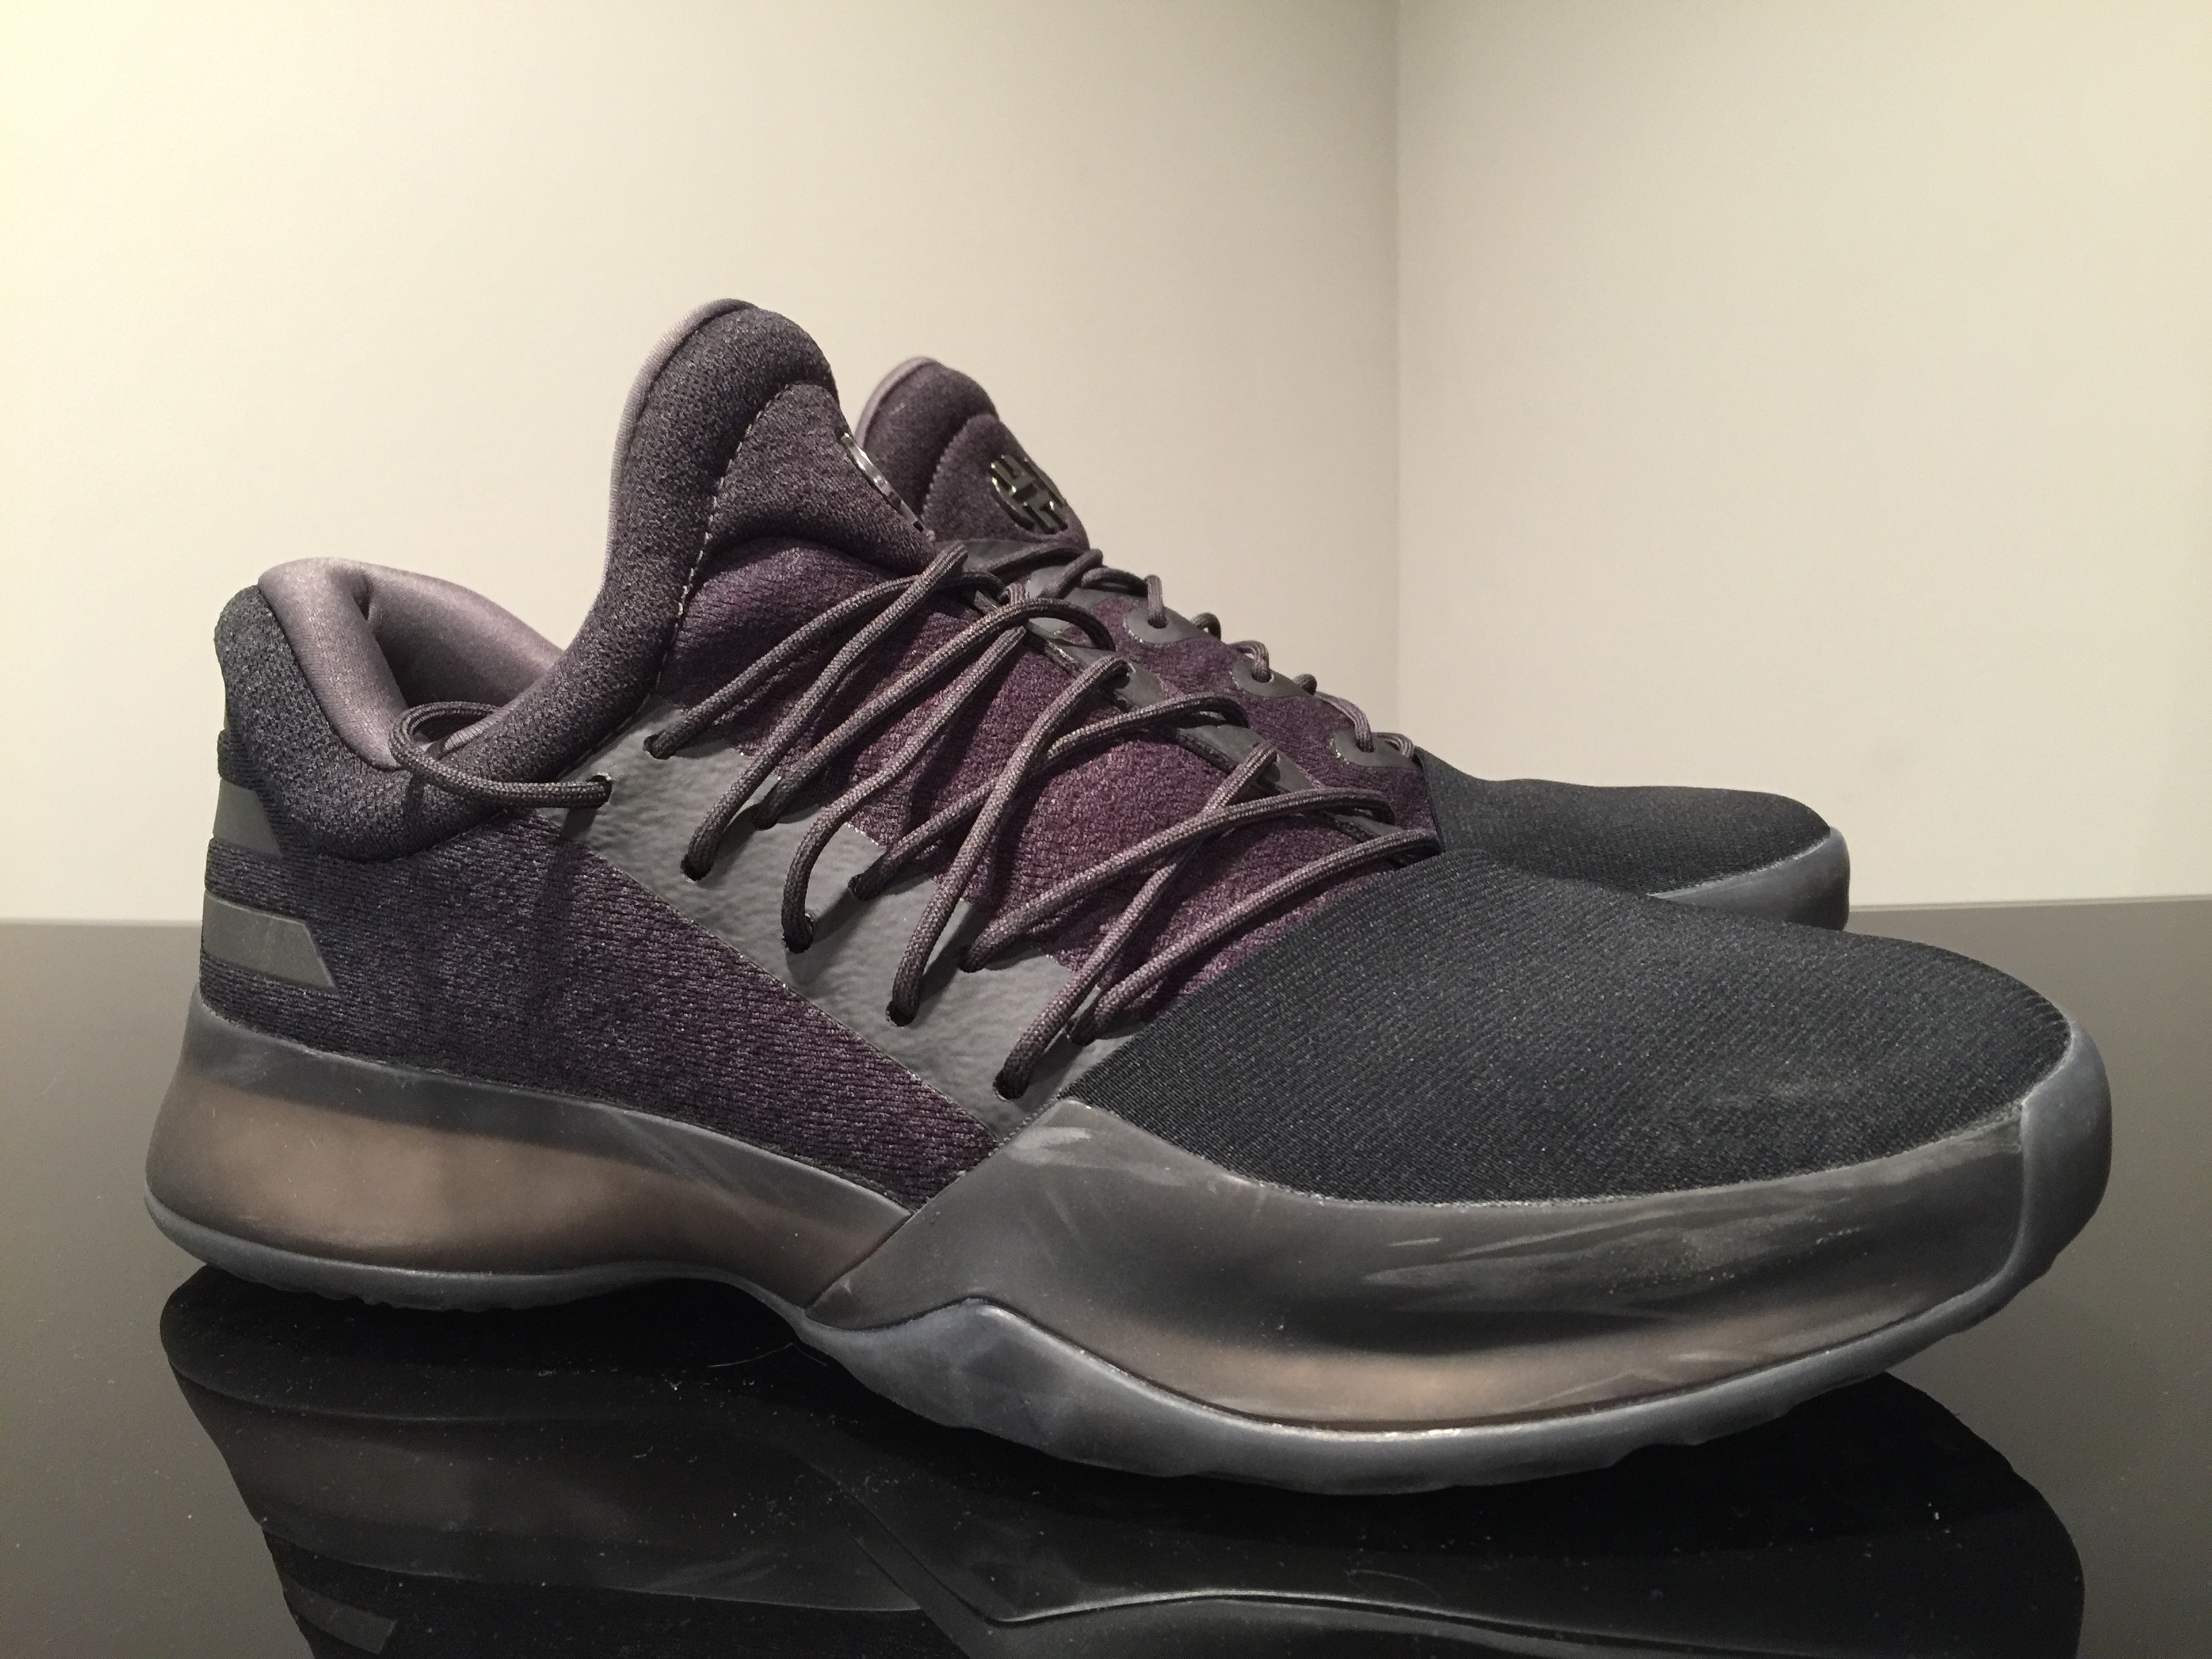 f51b8beb6de adidas Harden Vol. 1 Performance Review